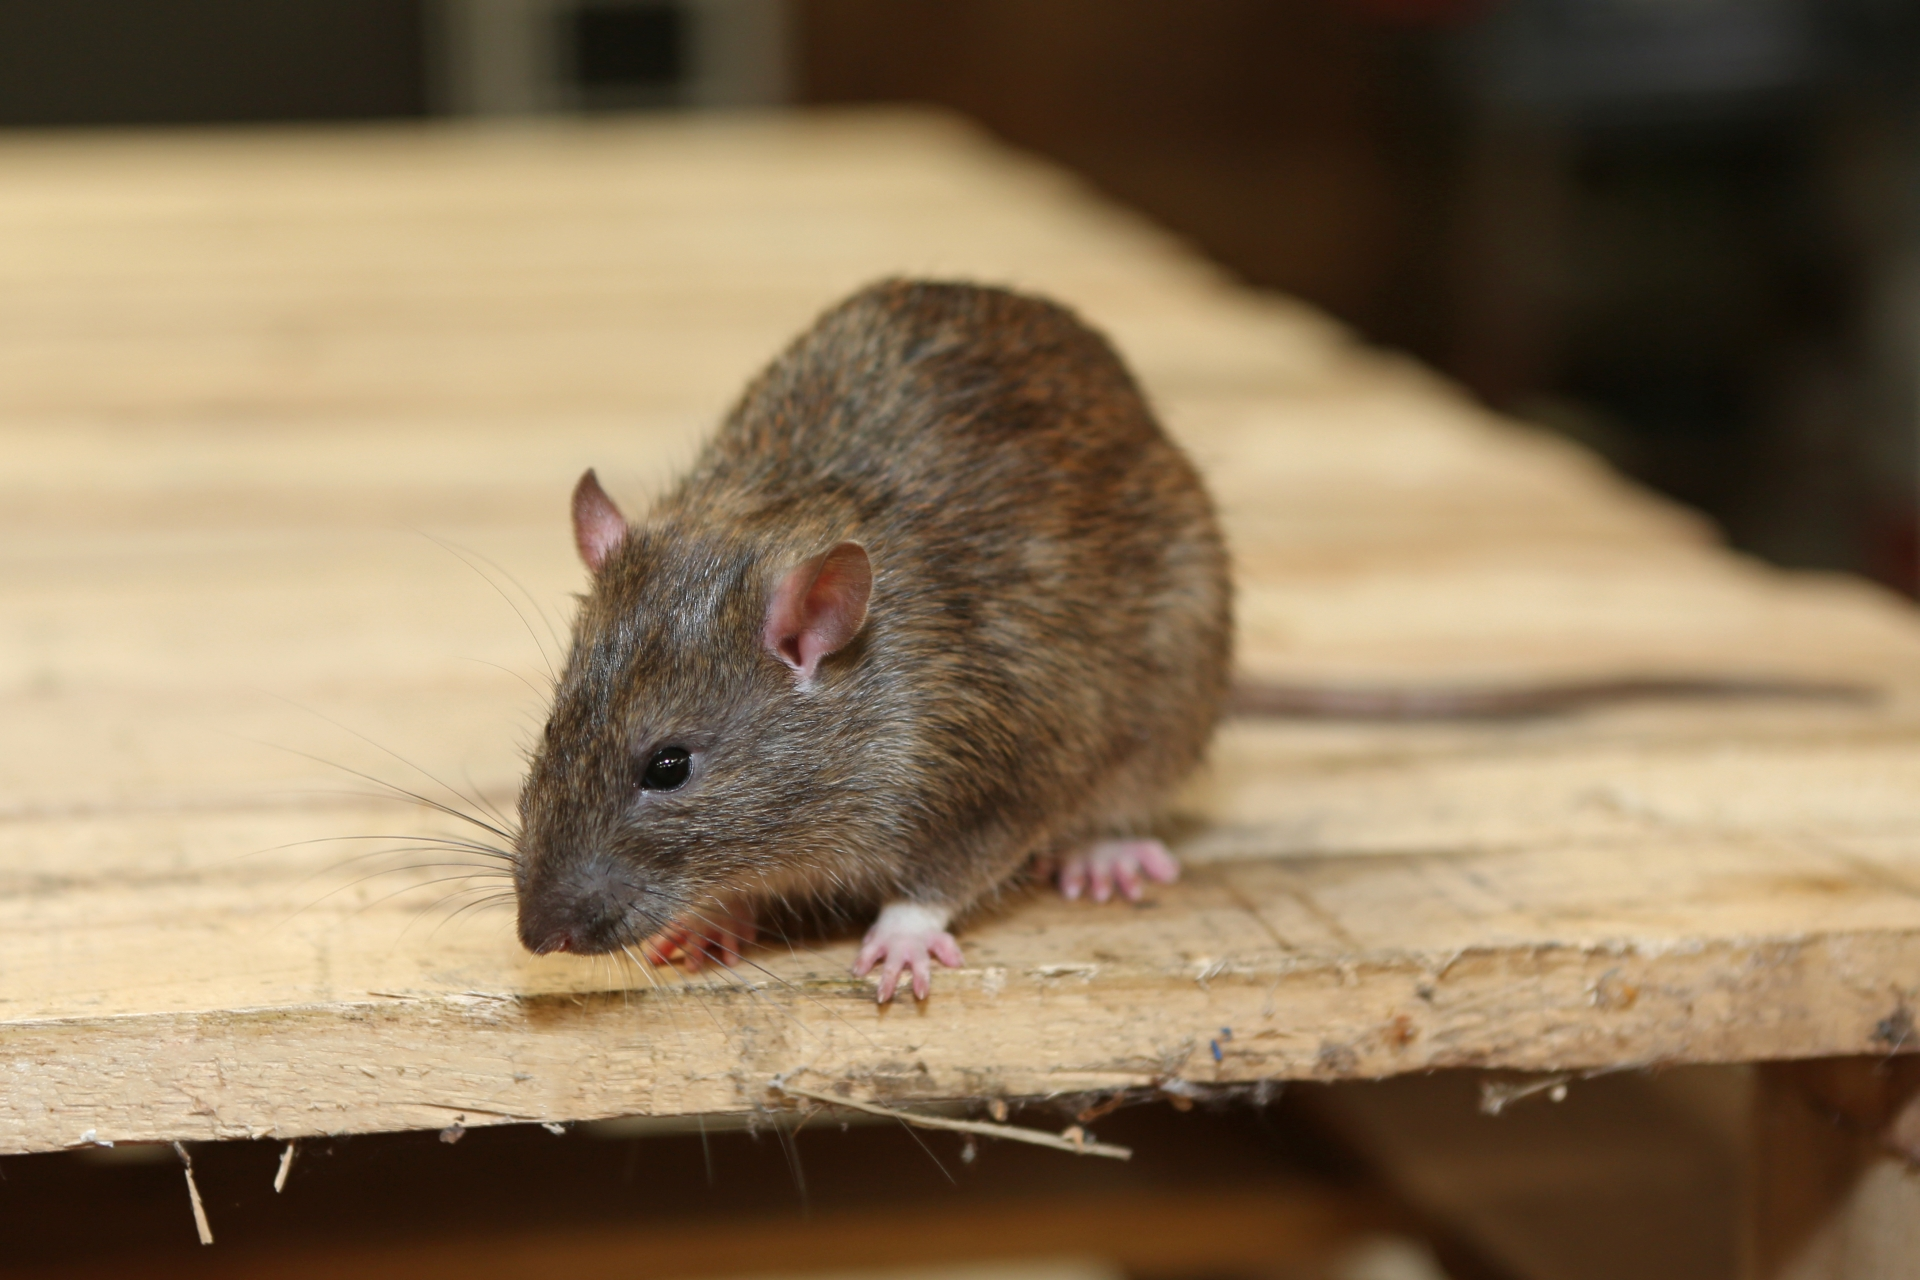 Rat Control, Pest Control in Brentford, Kew Bridge, TW8. Call Now 020 8166 9746